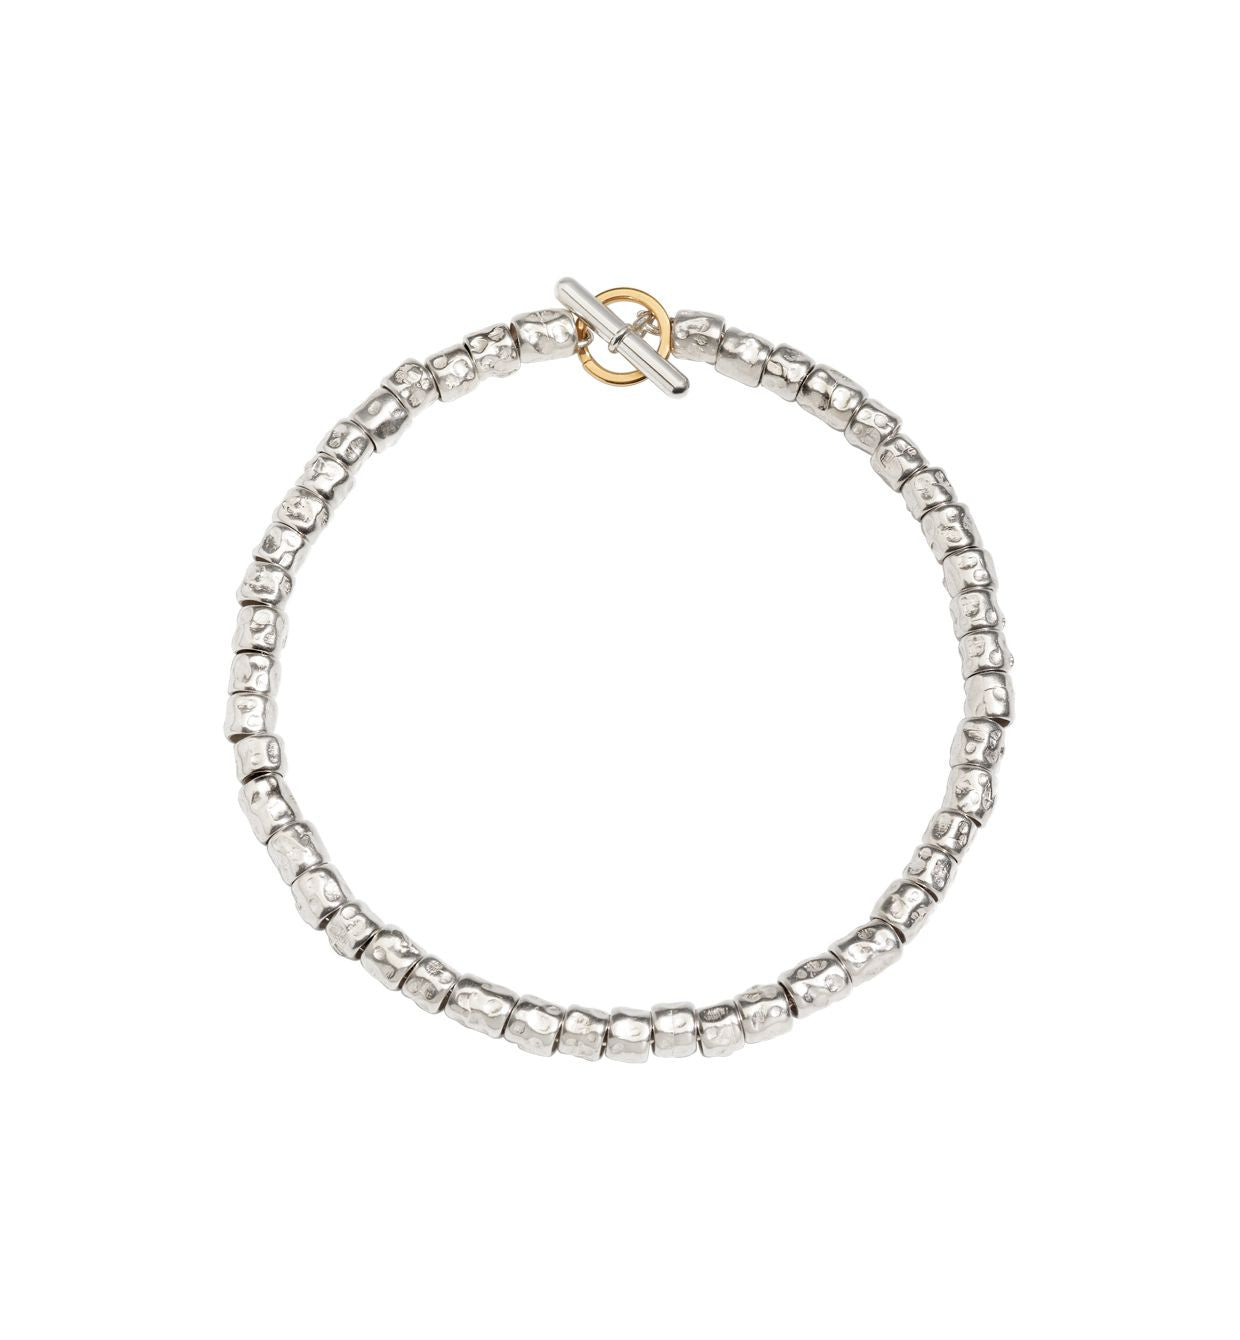 DoDo Granelli Bracelet Kit in Silver with Yellow Gold Brise Ring - Orsini Jewellers NZ